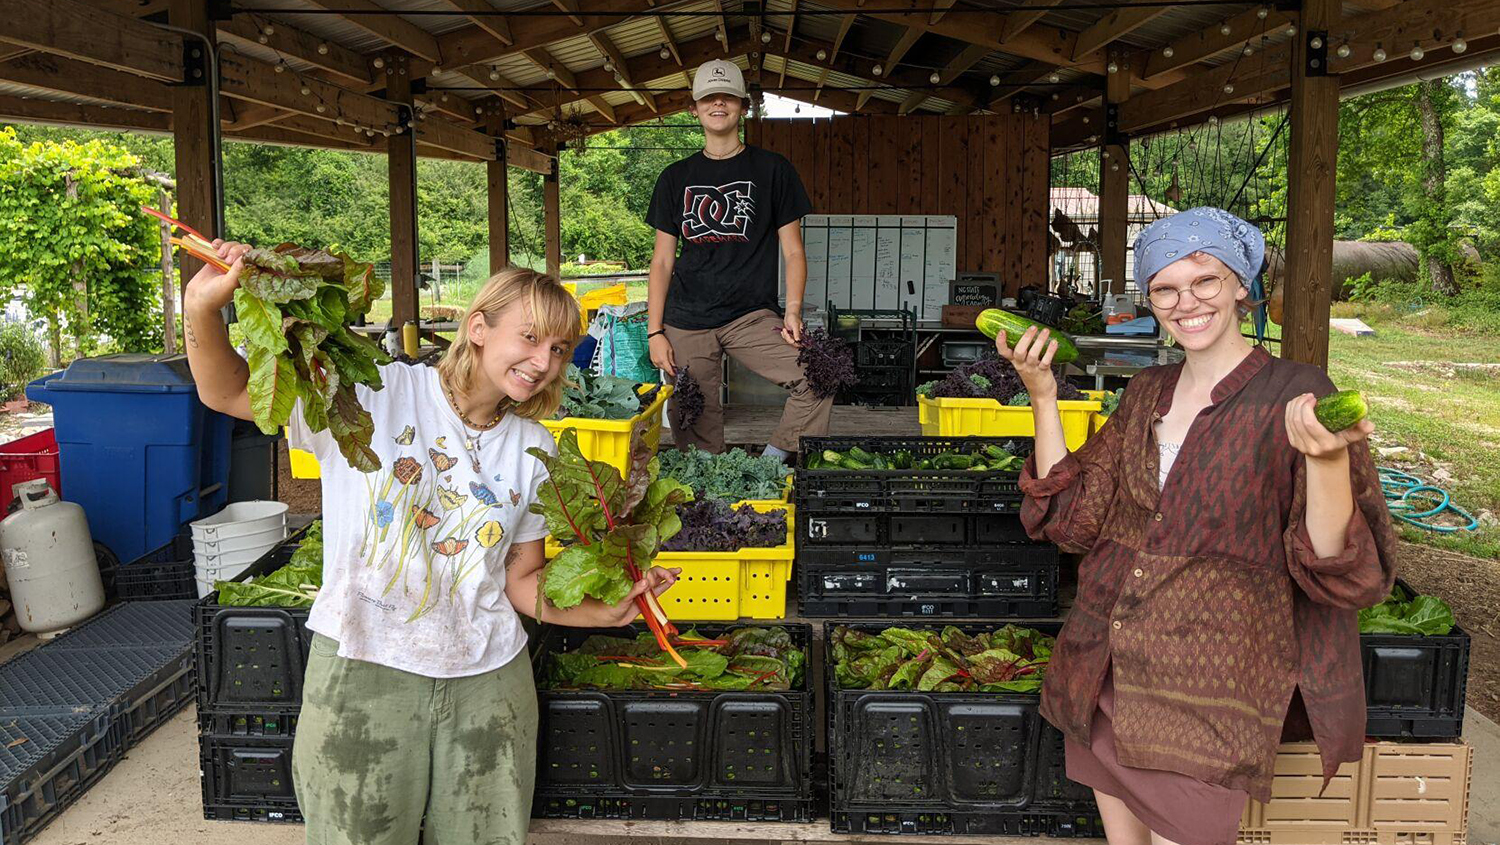 Three students surrounded by vegetables